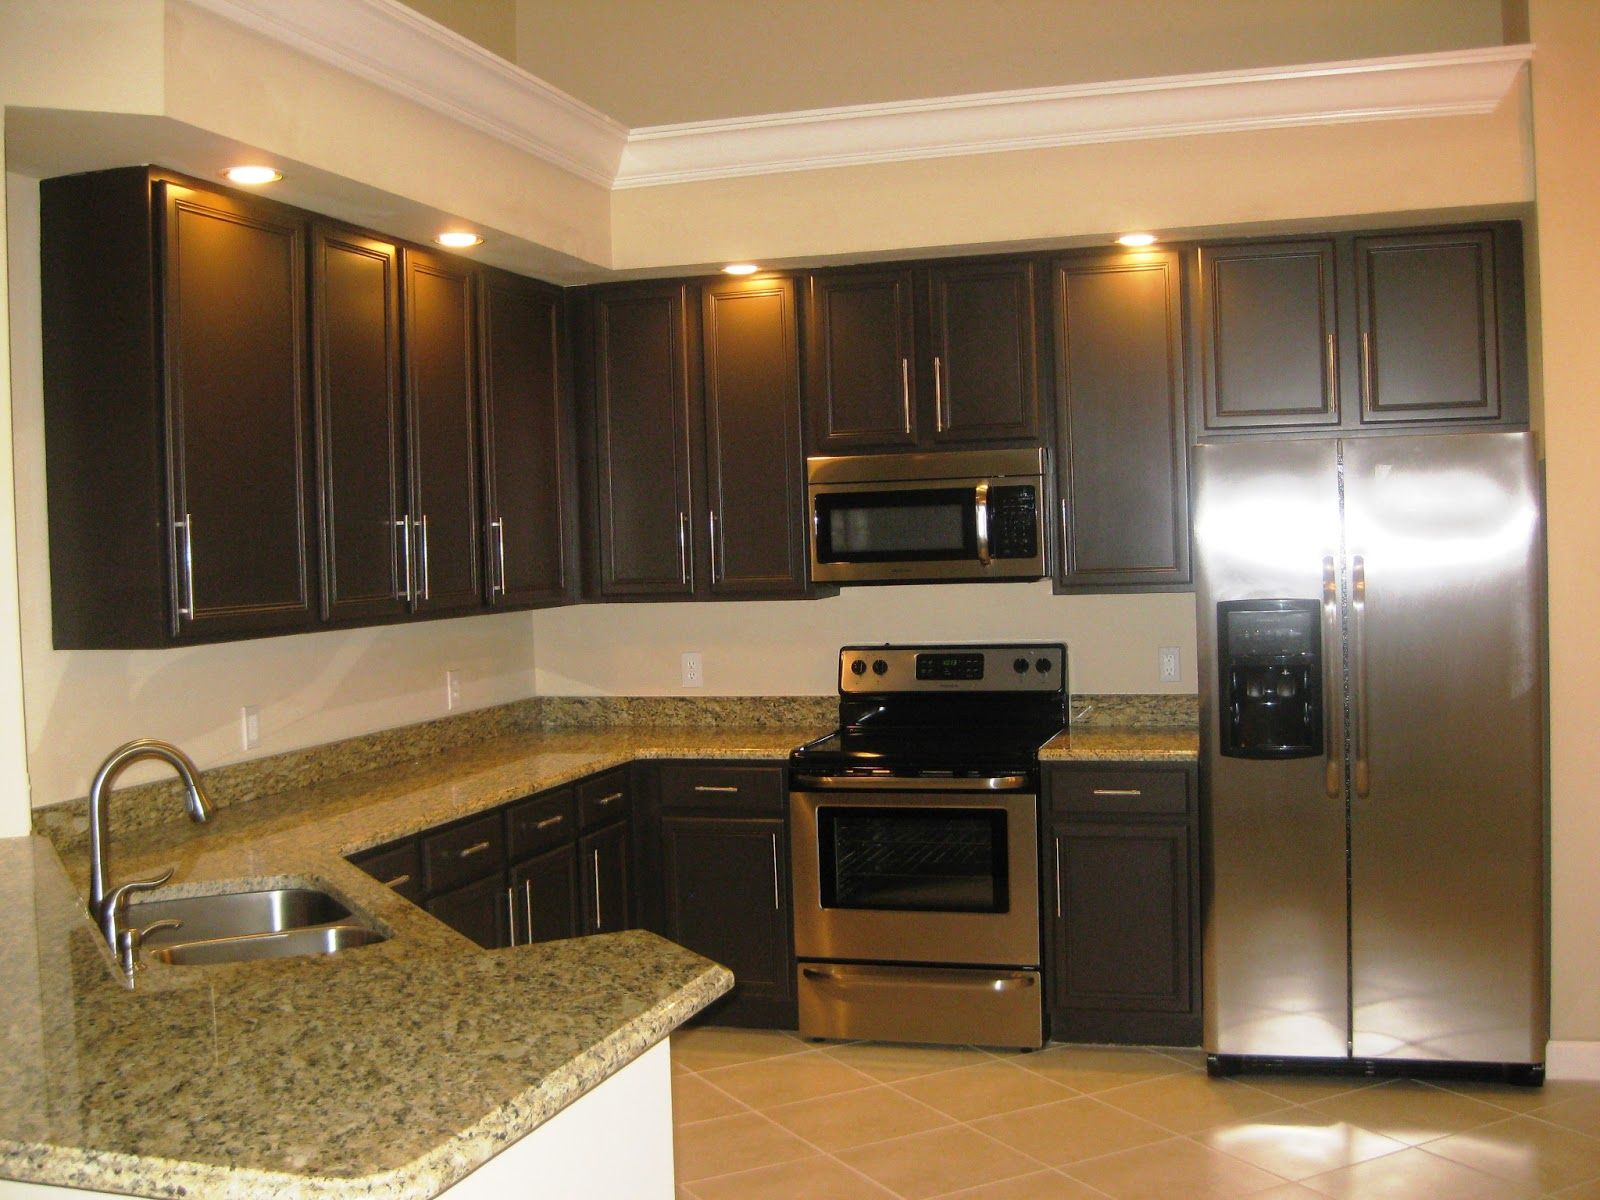 superior Kitchen Wall Colors With Black Cabinets #9: 17 Images About Kitchens On Small Galaxies